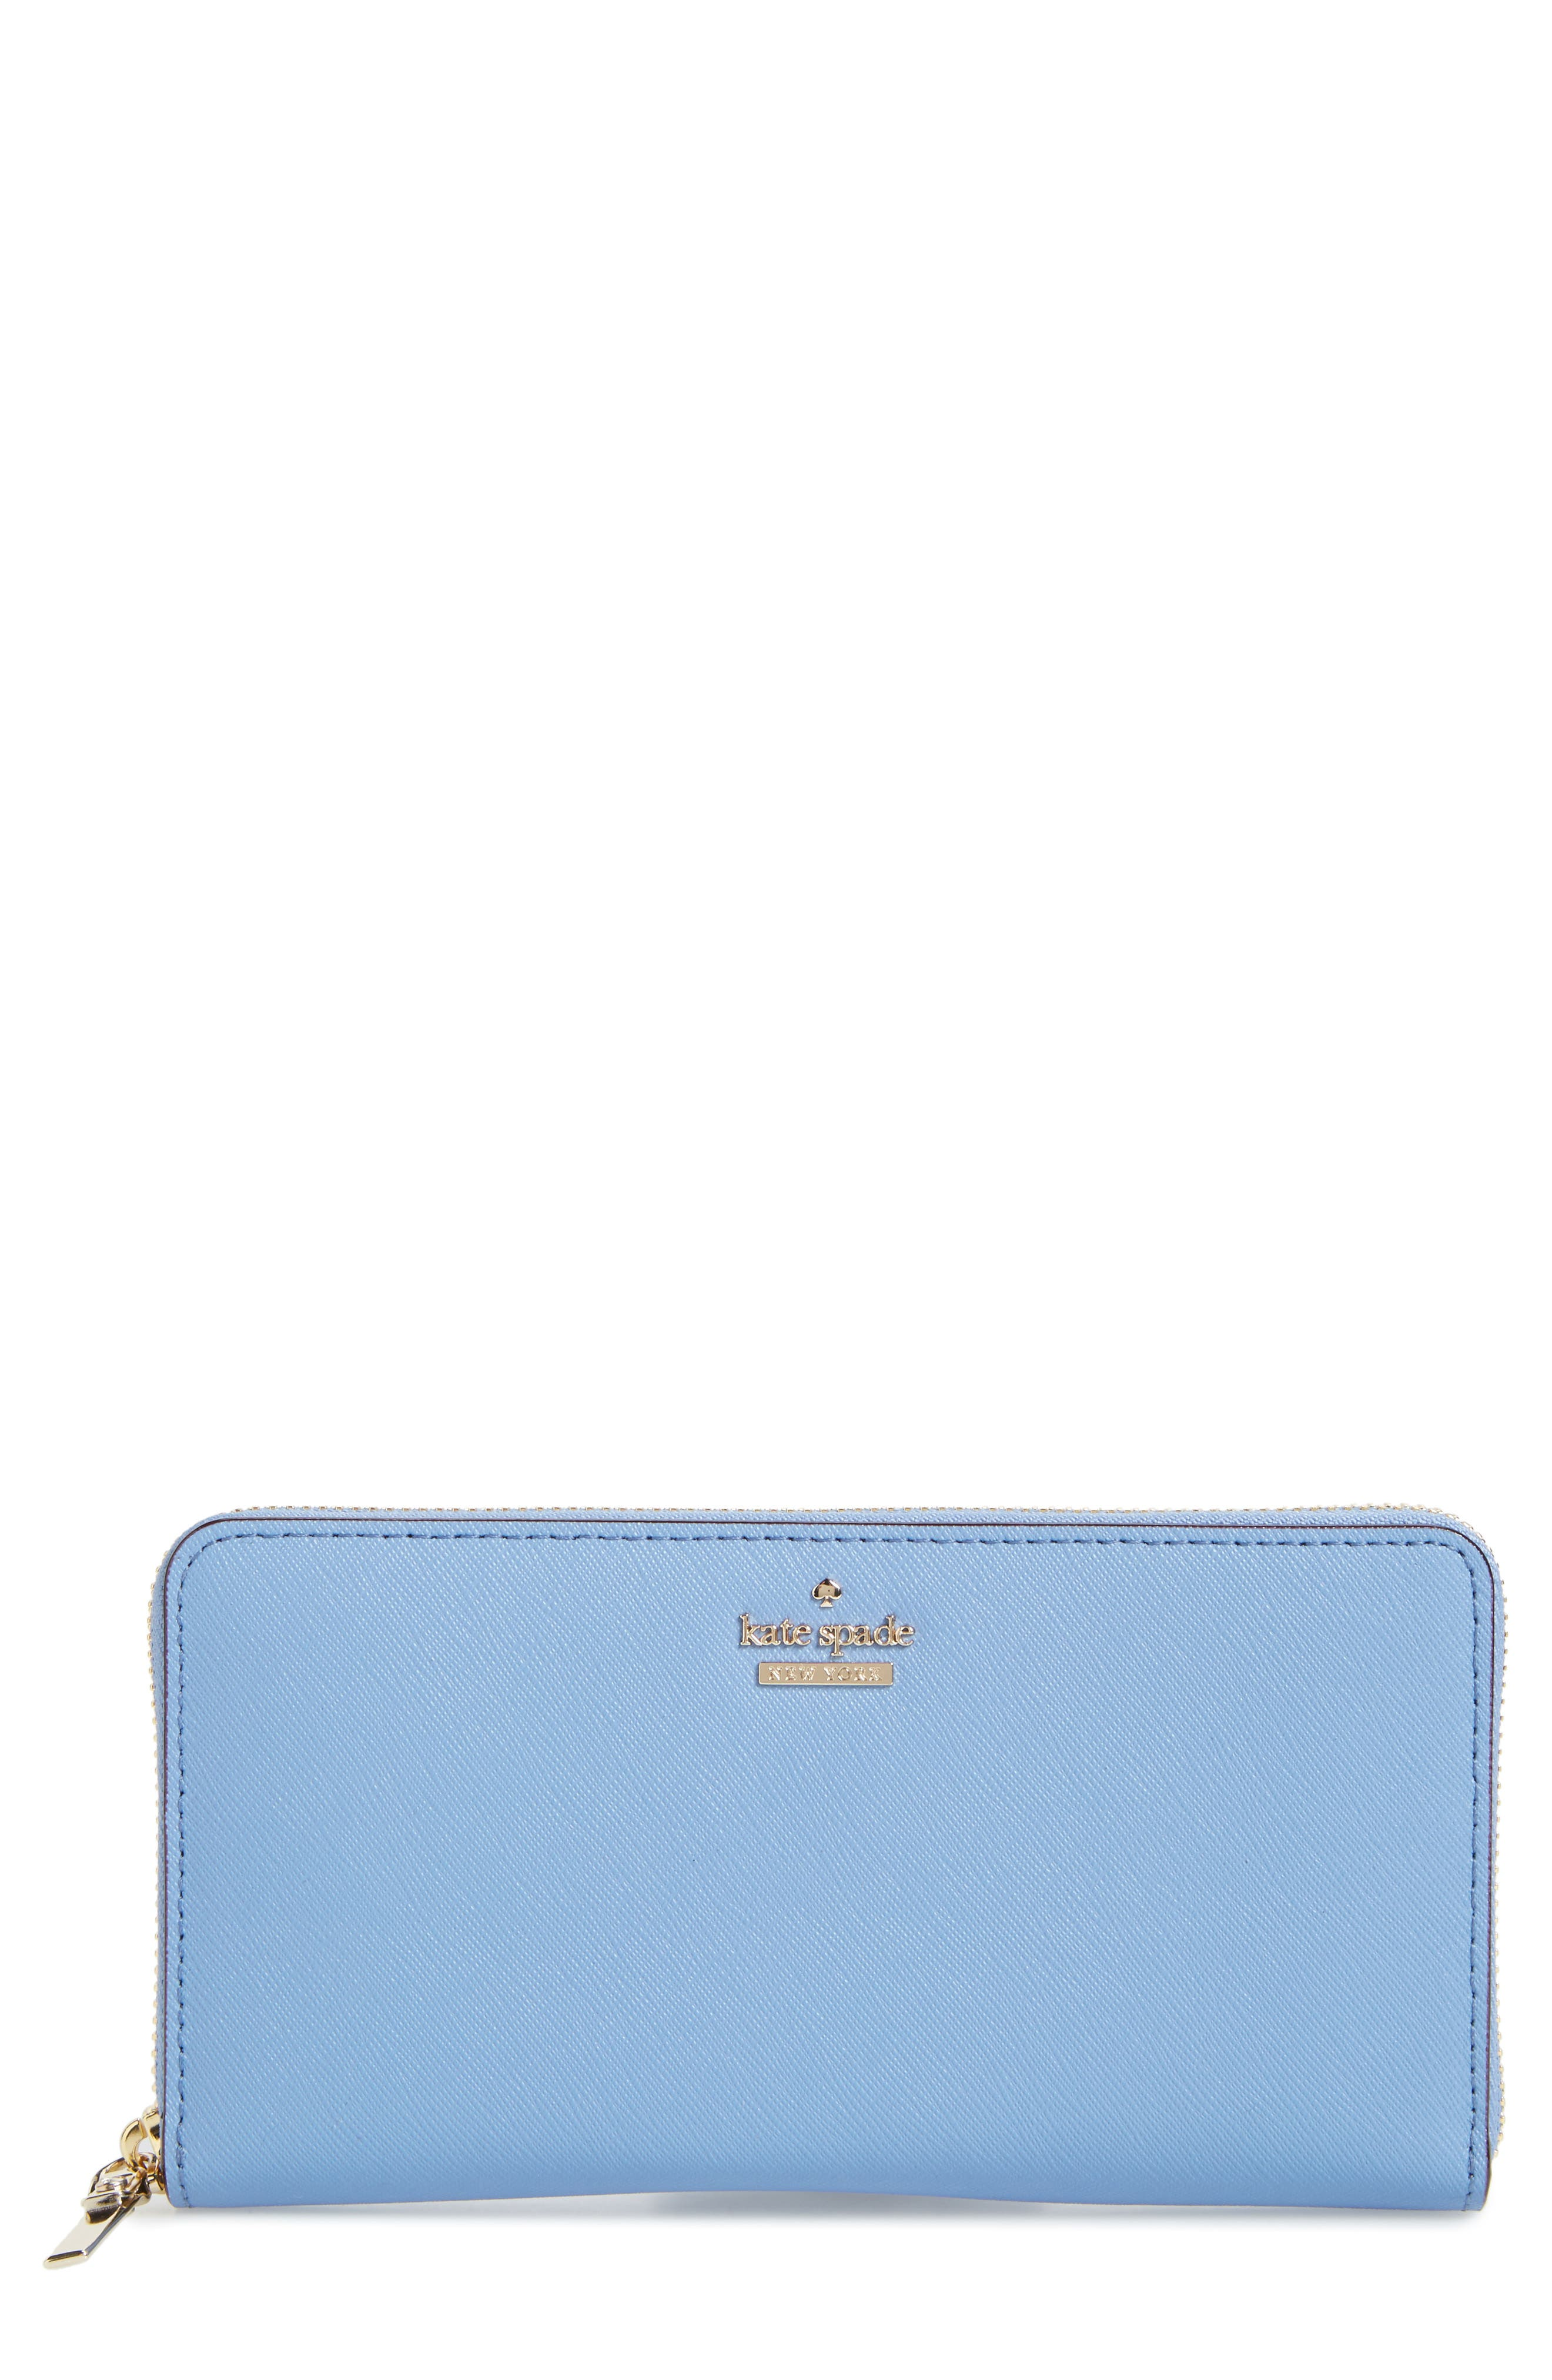 'cameron street - lacey' leather wallet,                             Main thumbnail 14, color,